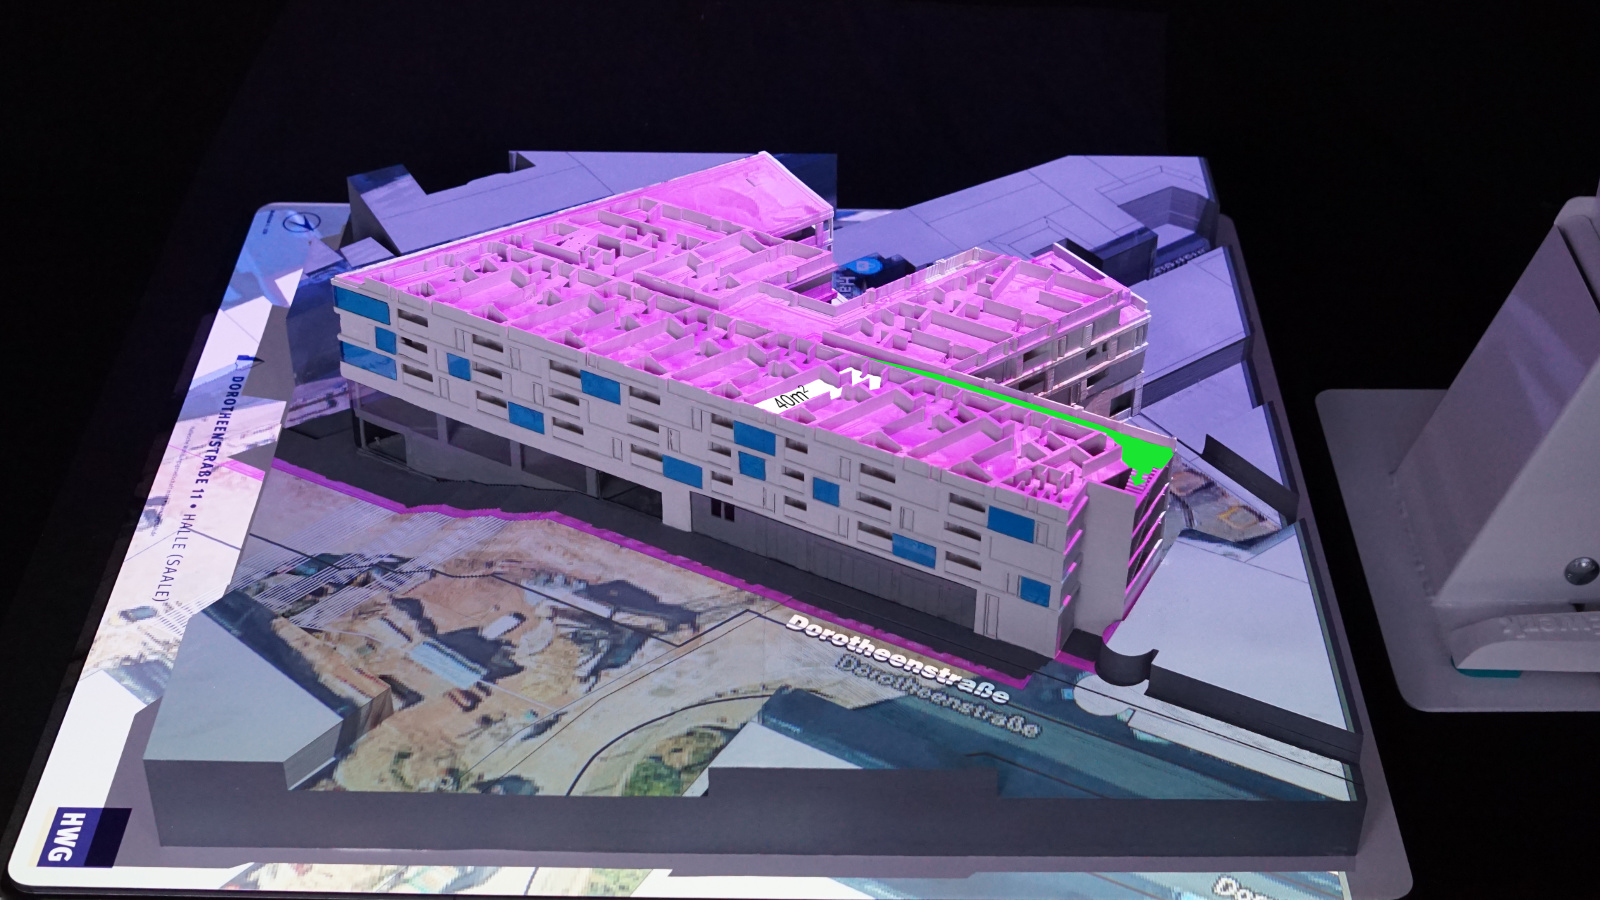 Projection mapping of floor information, flat detail and surrounding services